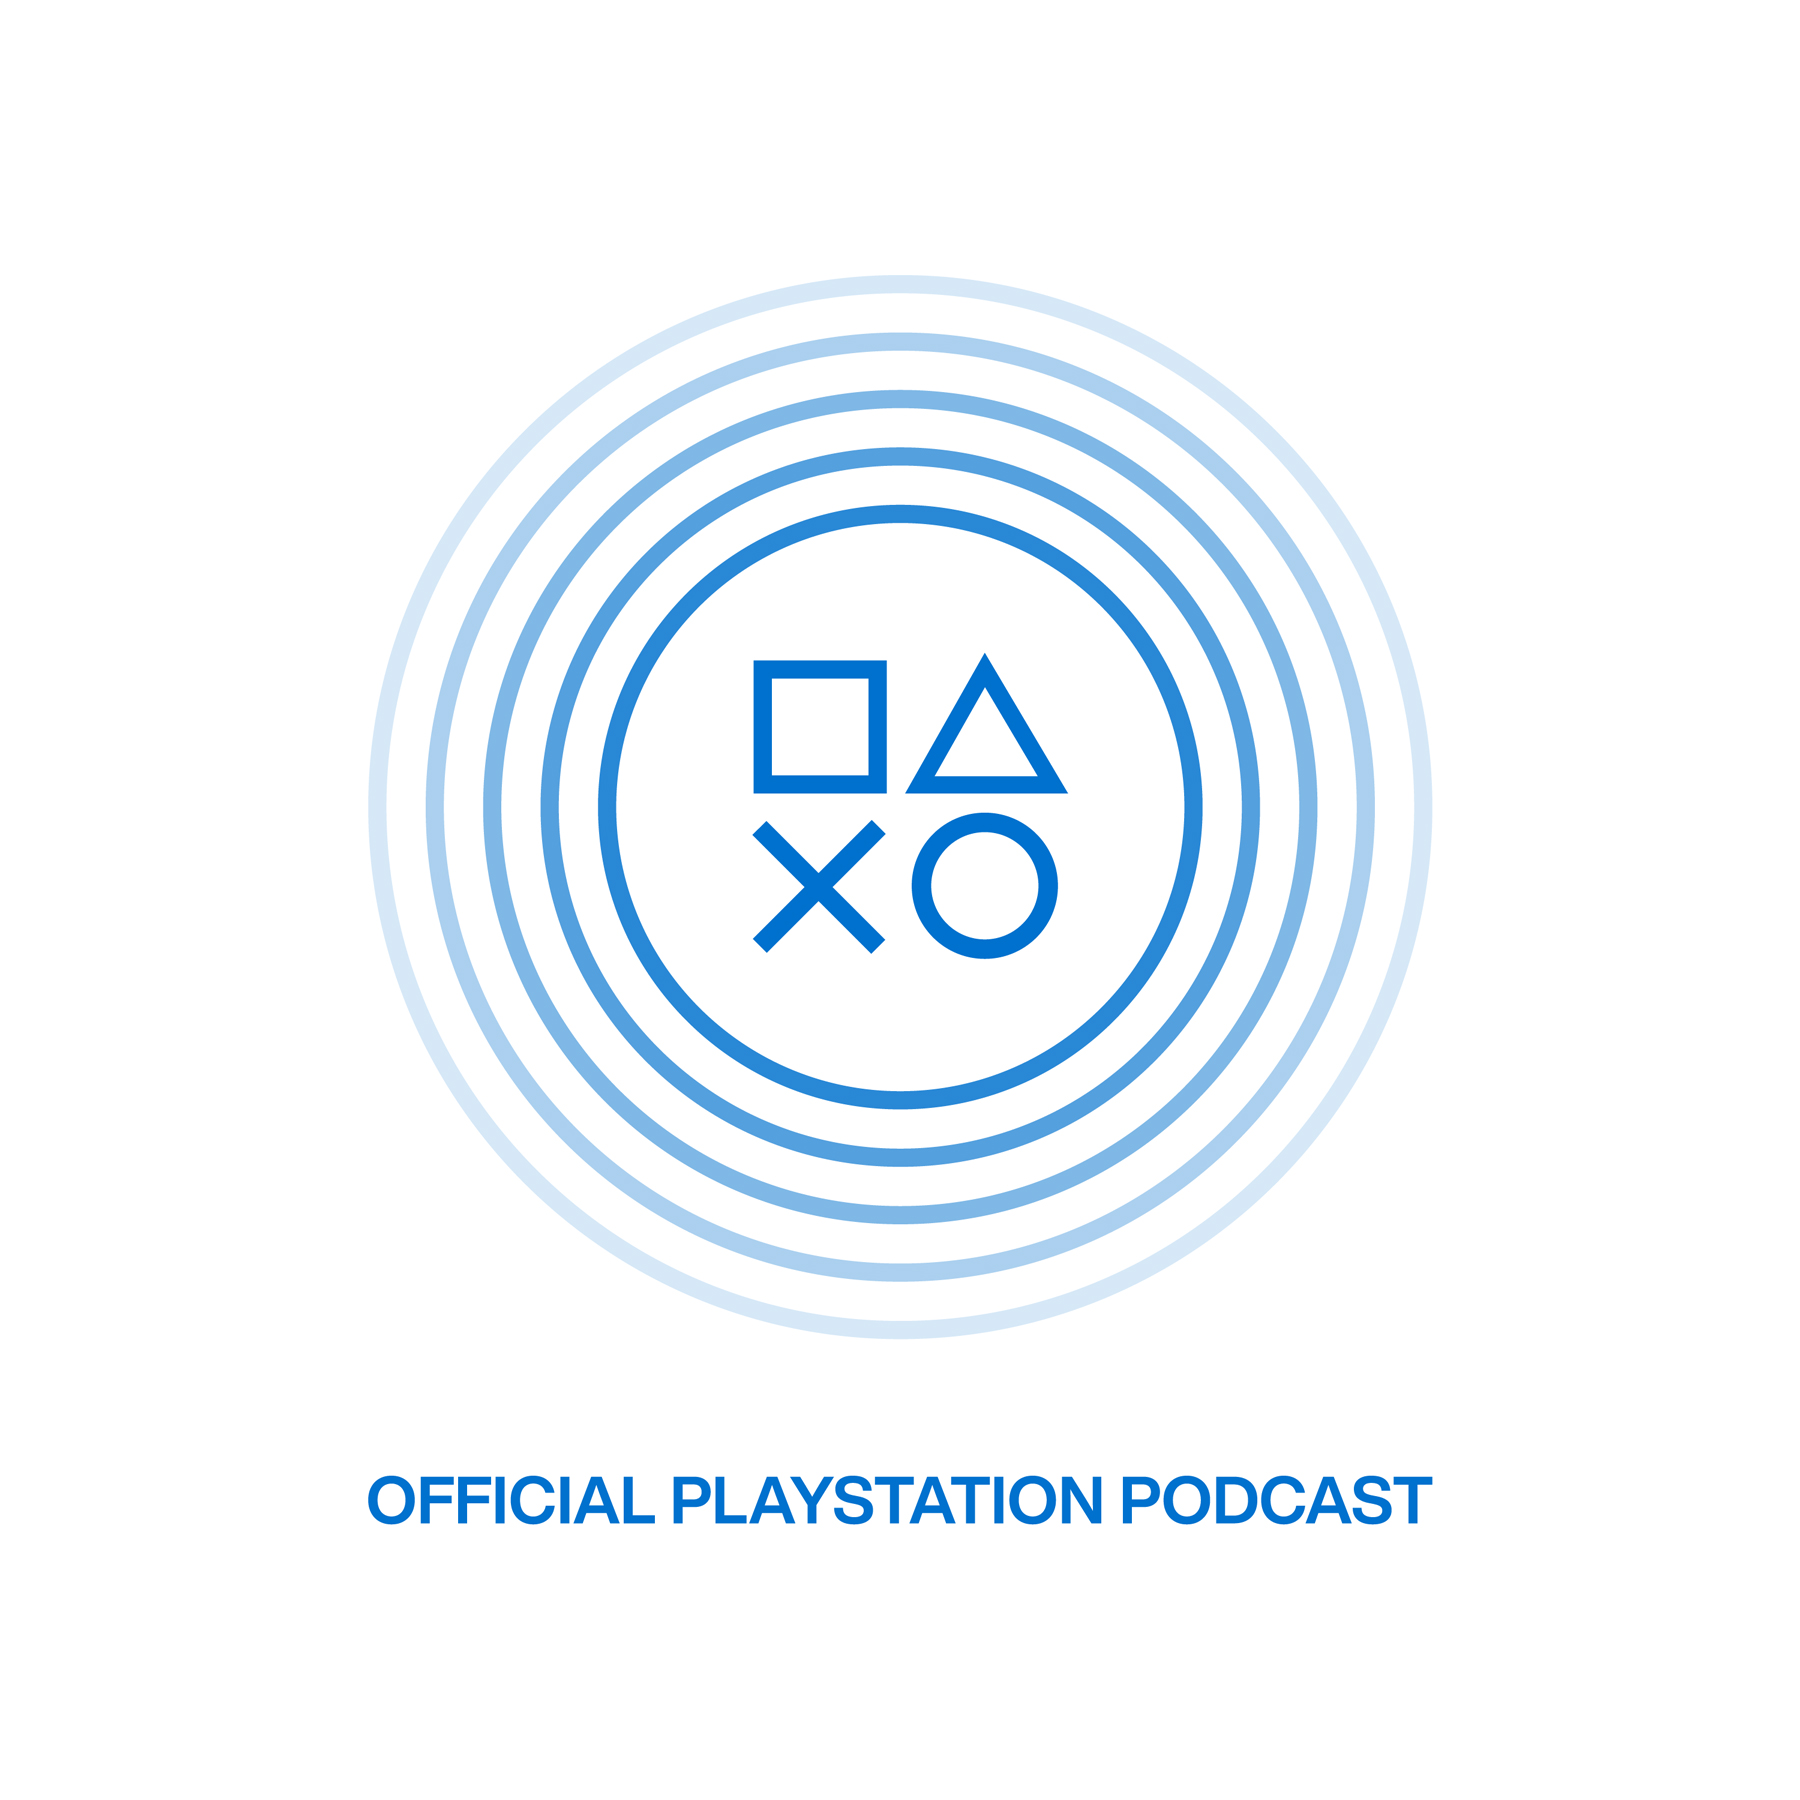 Official PlayStation Podcast podcast